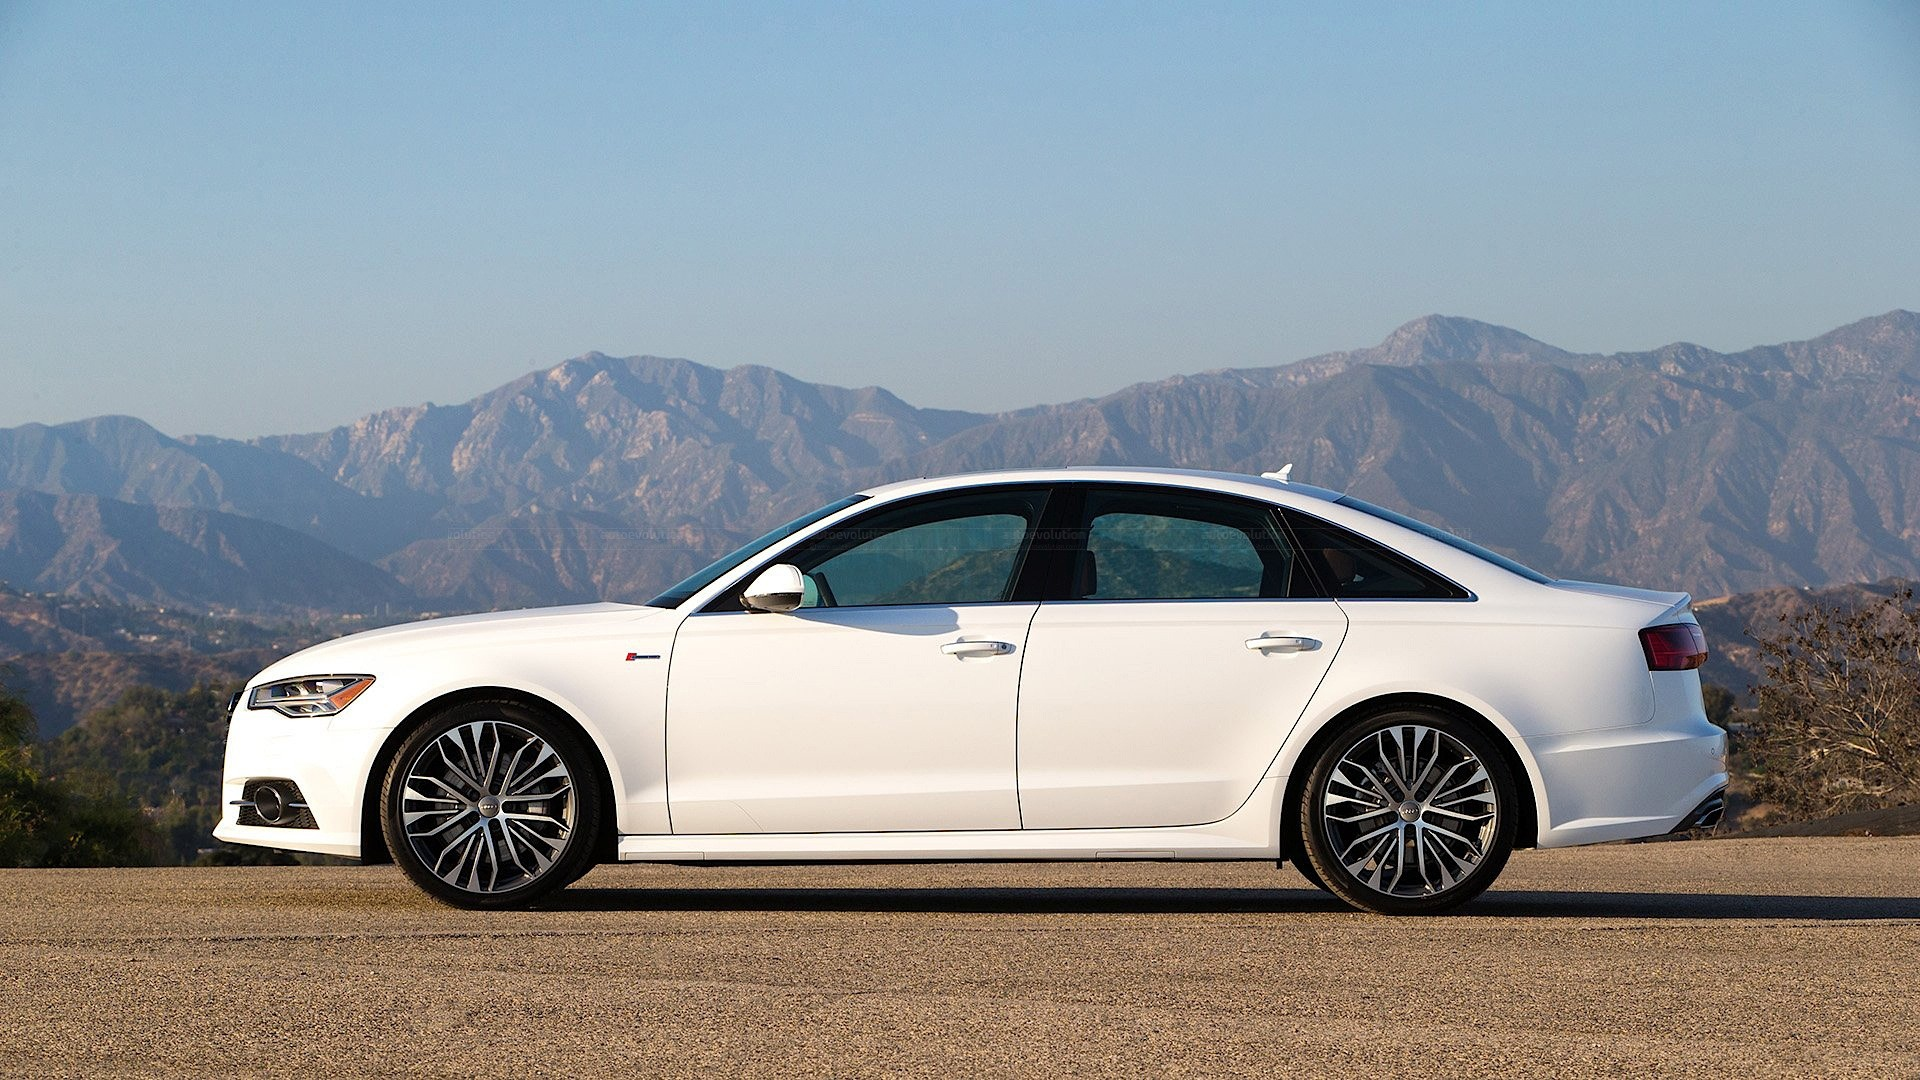 2016 Audi A6 And A7 Tfsi Quattro Models Look Handsome In Latest Us Spec Photo Gallery